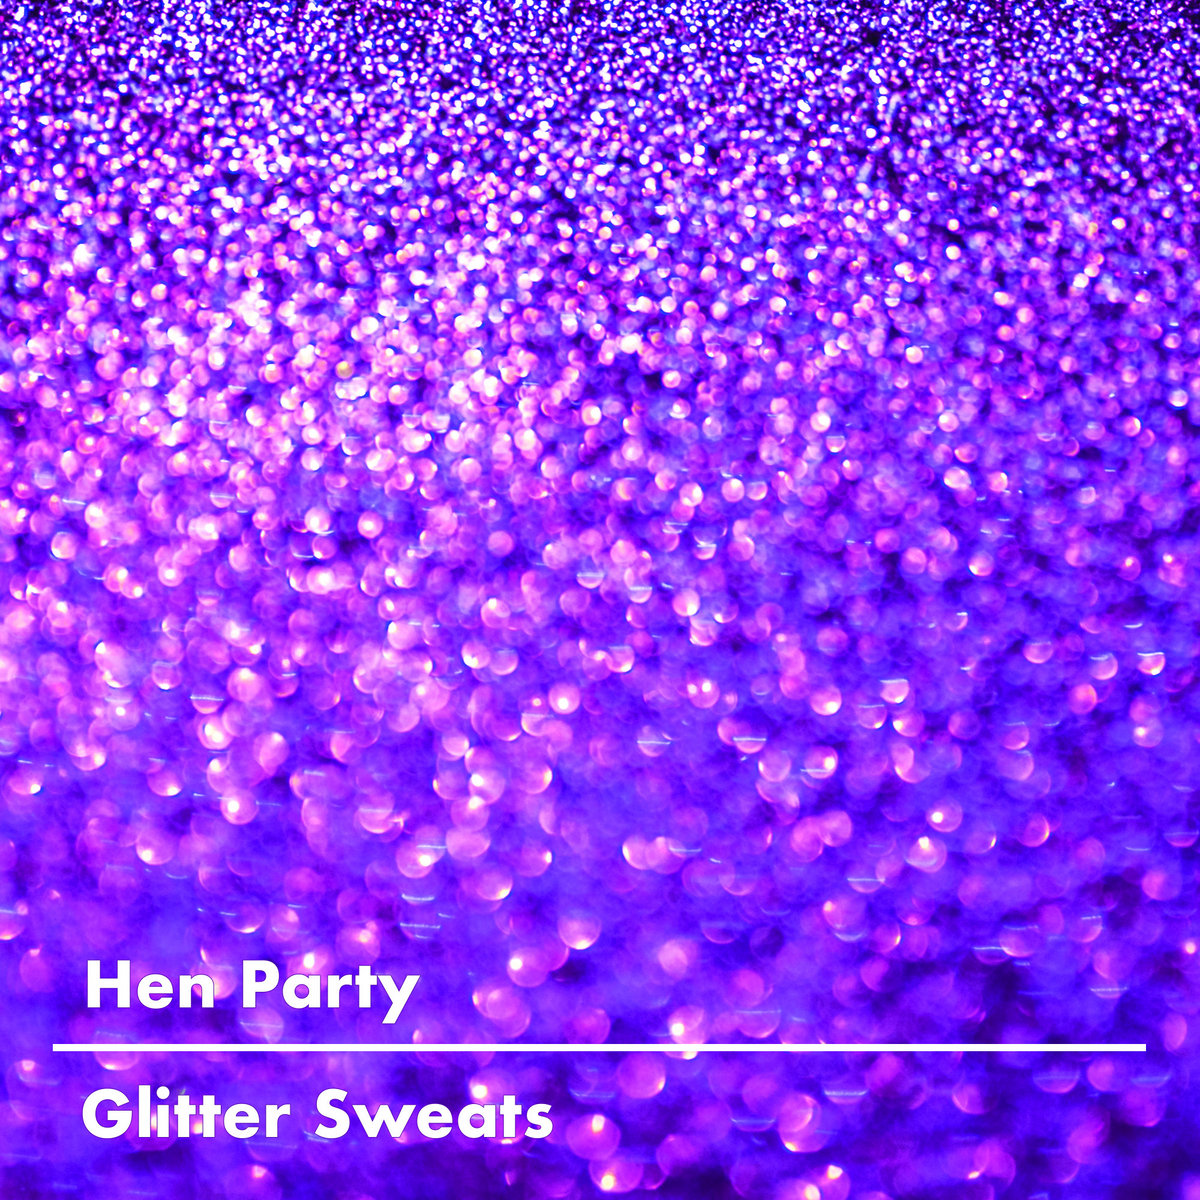 Hen Party – Glitter Sweats